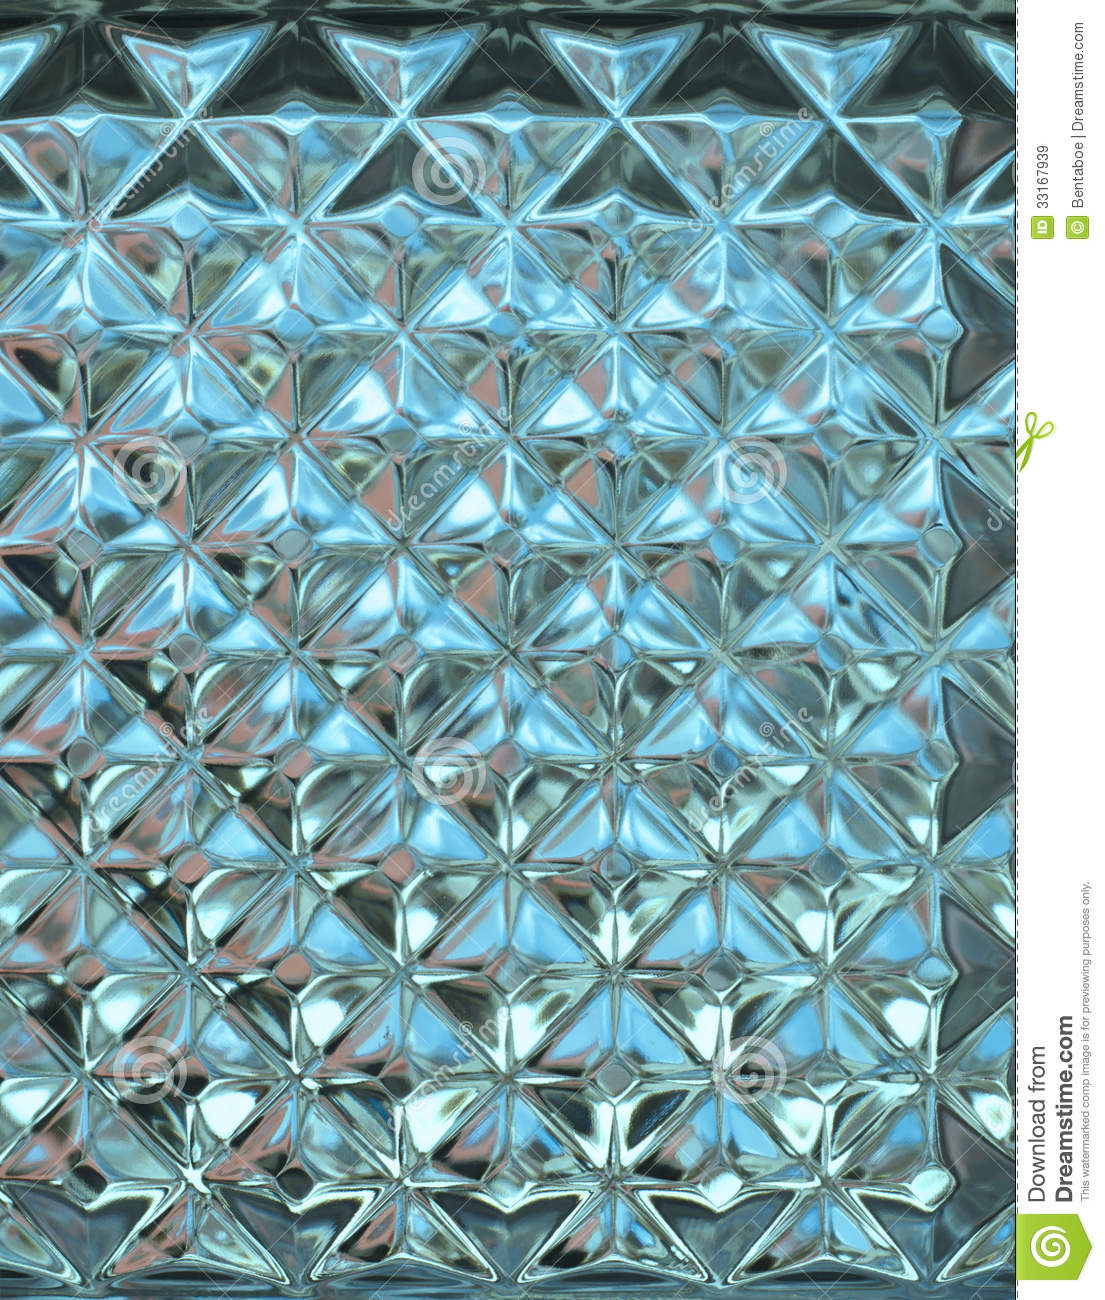 Transparent glass wall texture stock image image 33167939 for Exterior glass wall texture